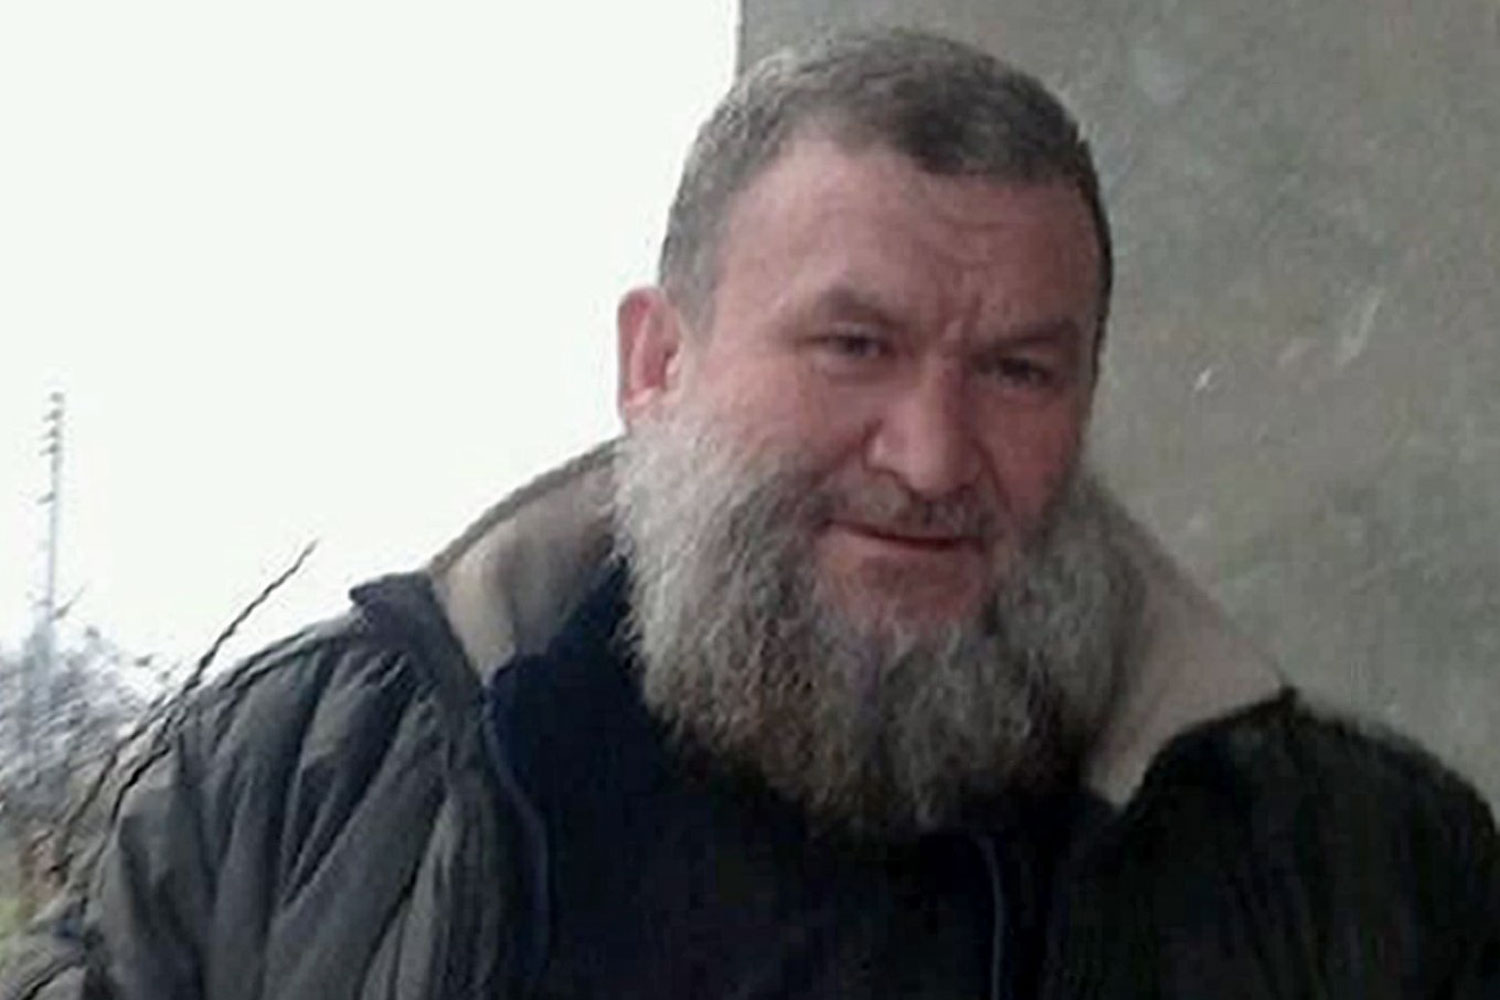 An undated handout picture provided by SITE Intelligence Group on Feb. 23, 2014 allegedly shows Syrian Islamist leader Abu Khalid al-Suri at an undisclosed location in Syria.